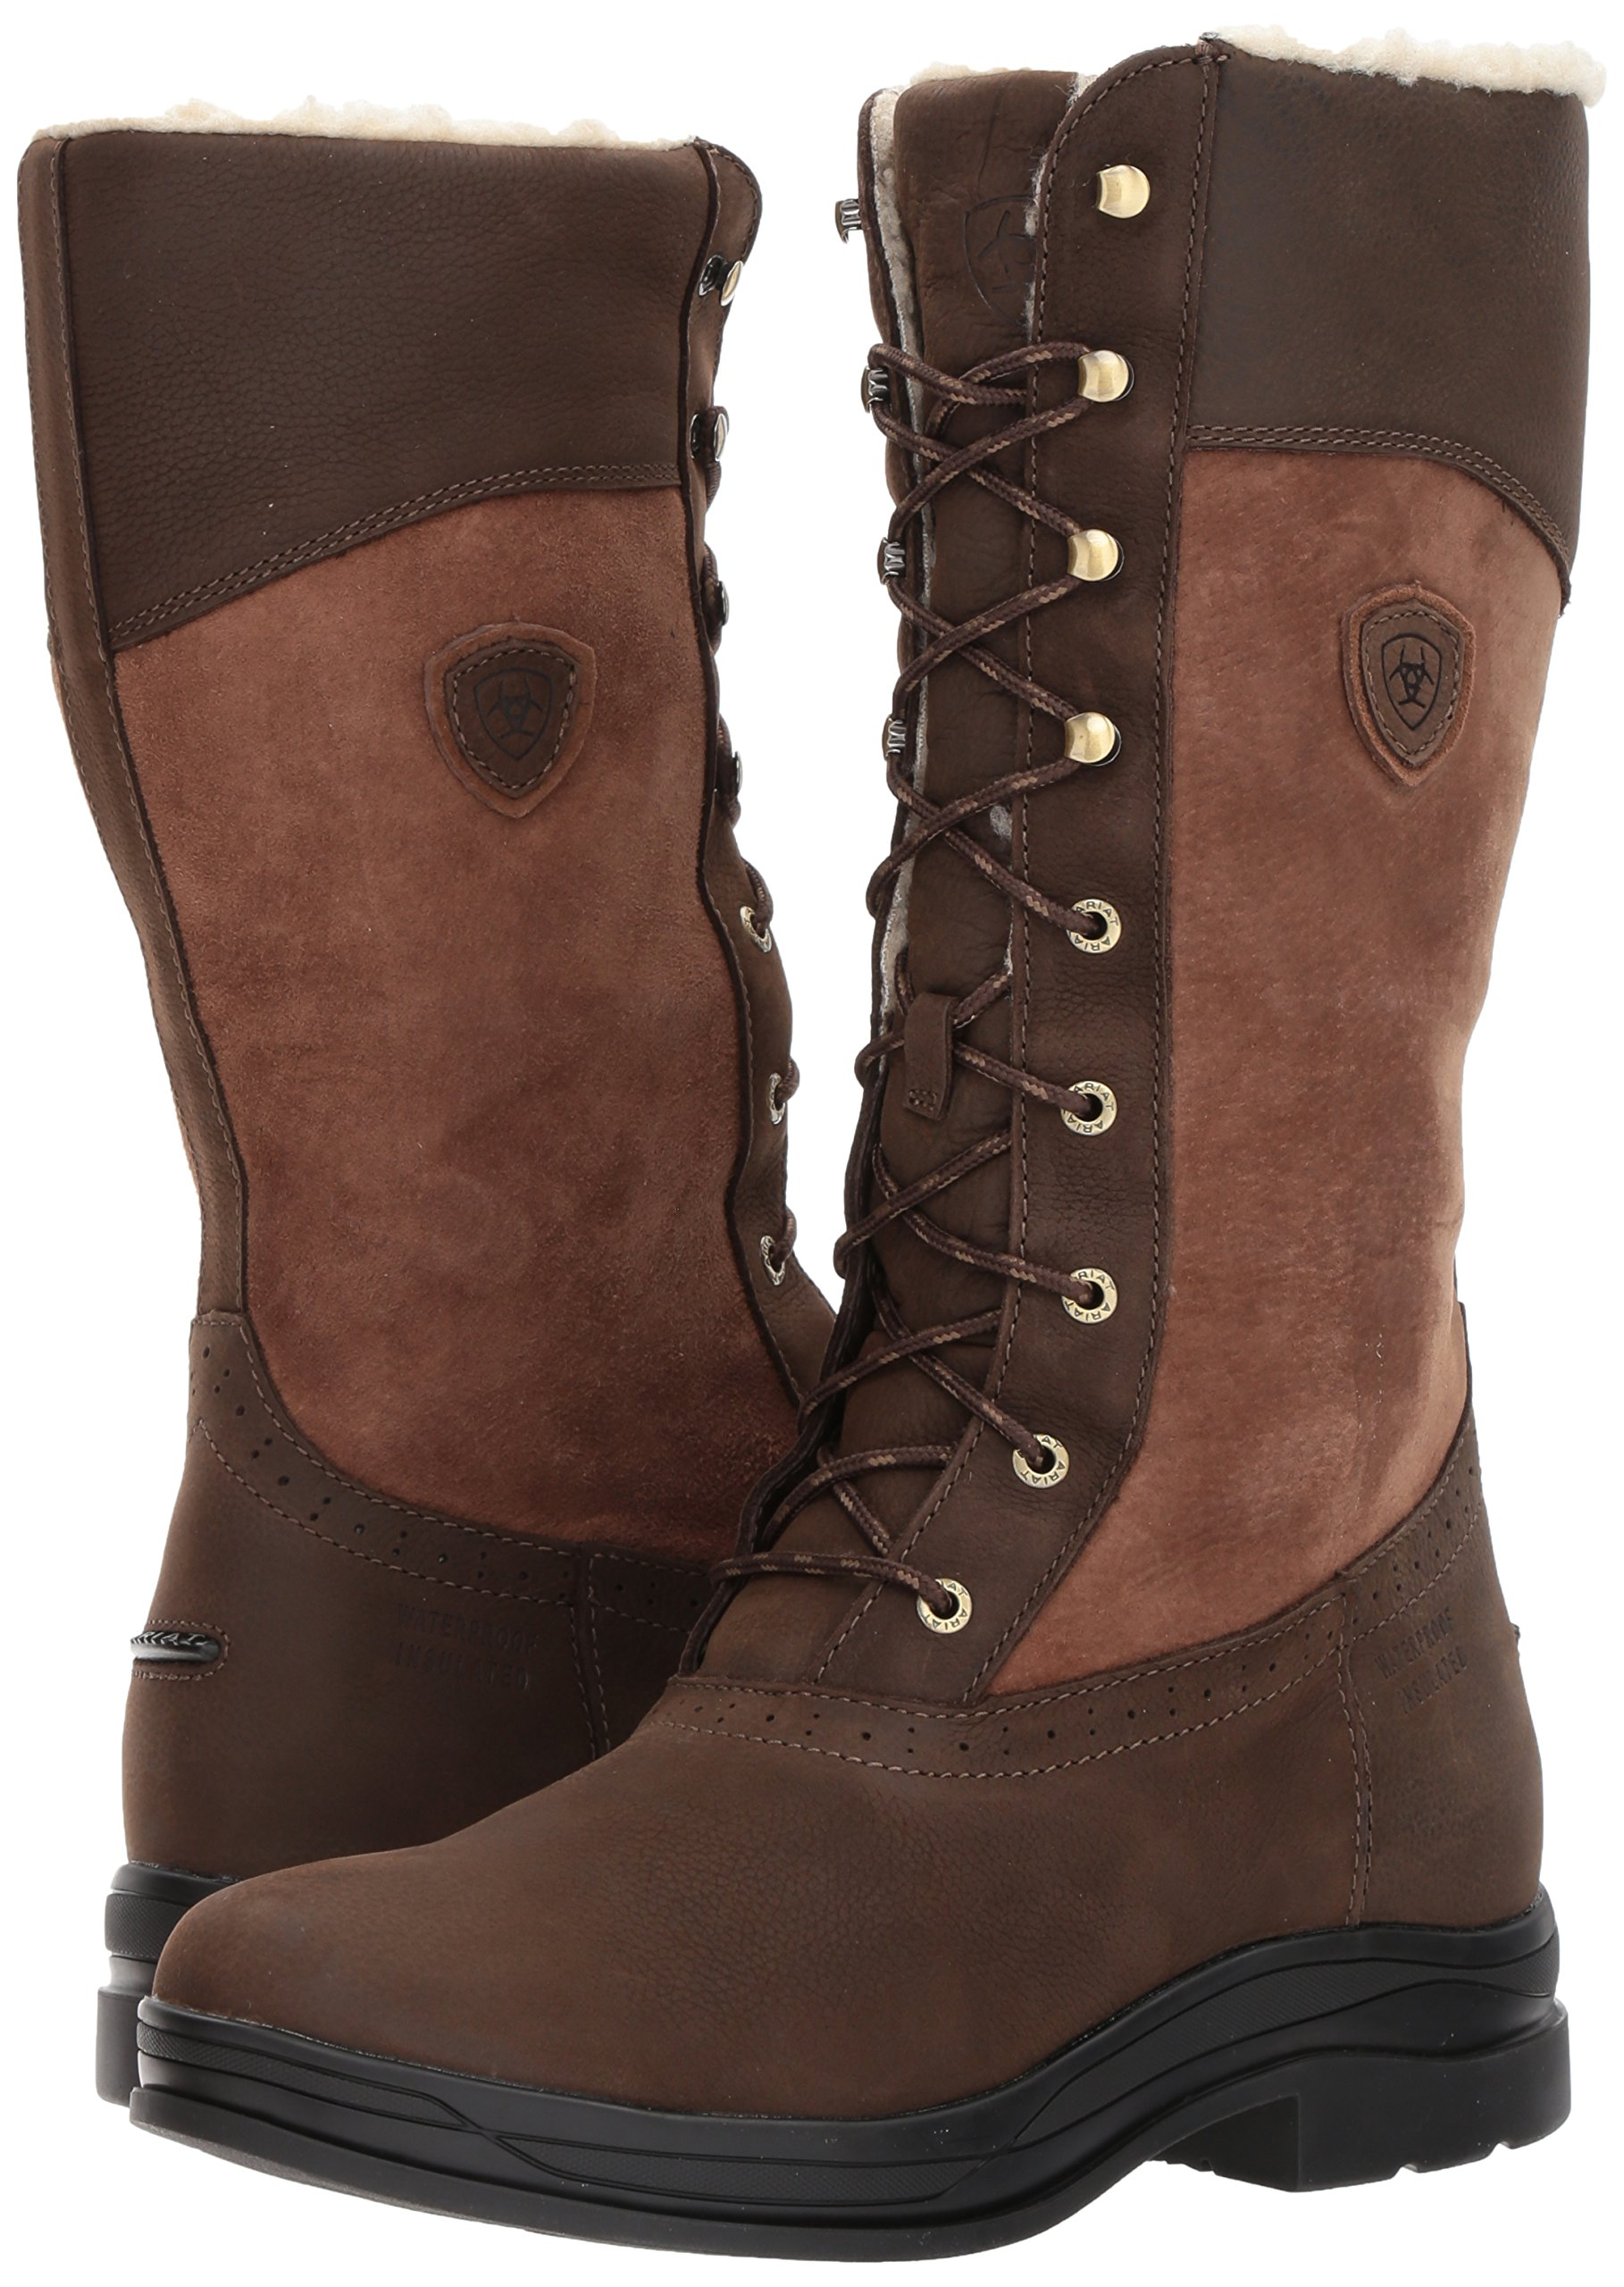 Ariat Women's Wythburn H2O Insulated Country Boot, Java, 7.5 B US by Ariat (Image #6)